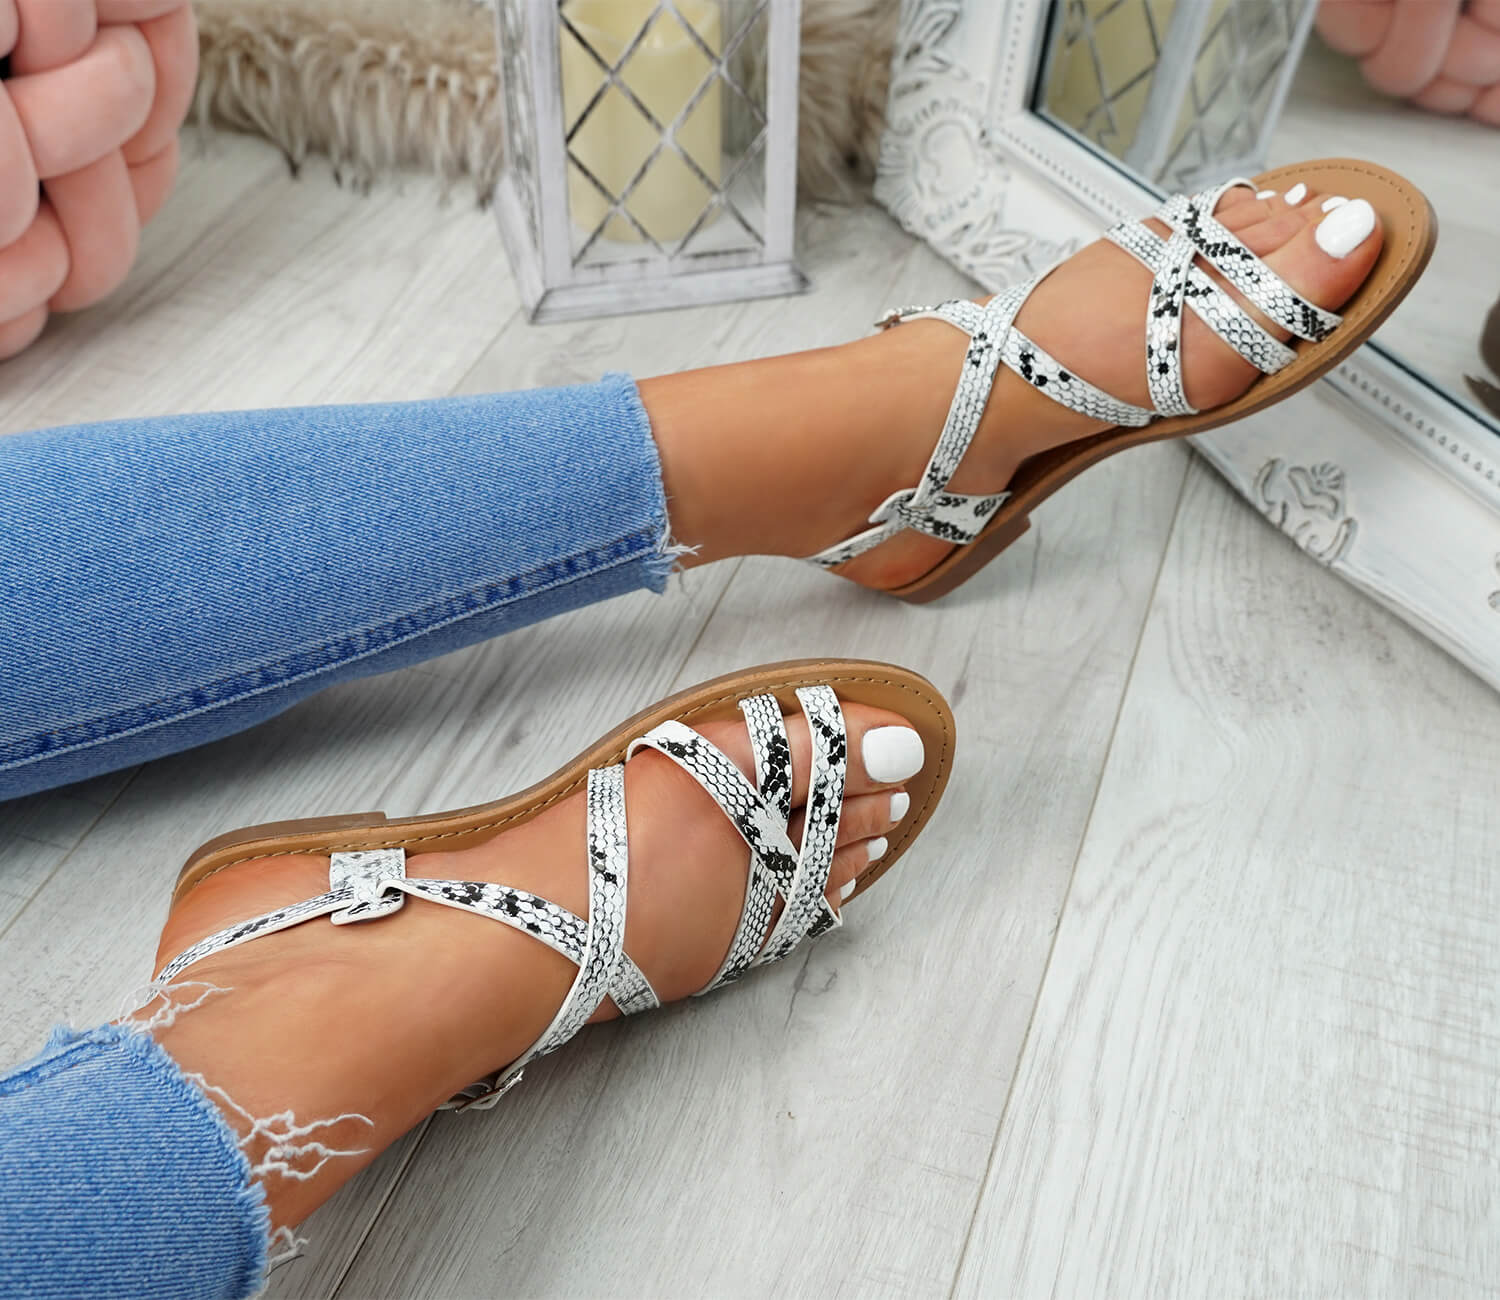 WOMENS-LADIES-ANKLE-STRAP-PEEP-TOE-BUCKLE-FLAT-SANDALS-SUMMER-CASUAL-SHOES thumbnail 29